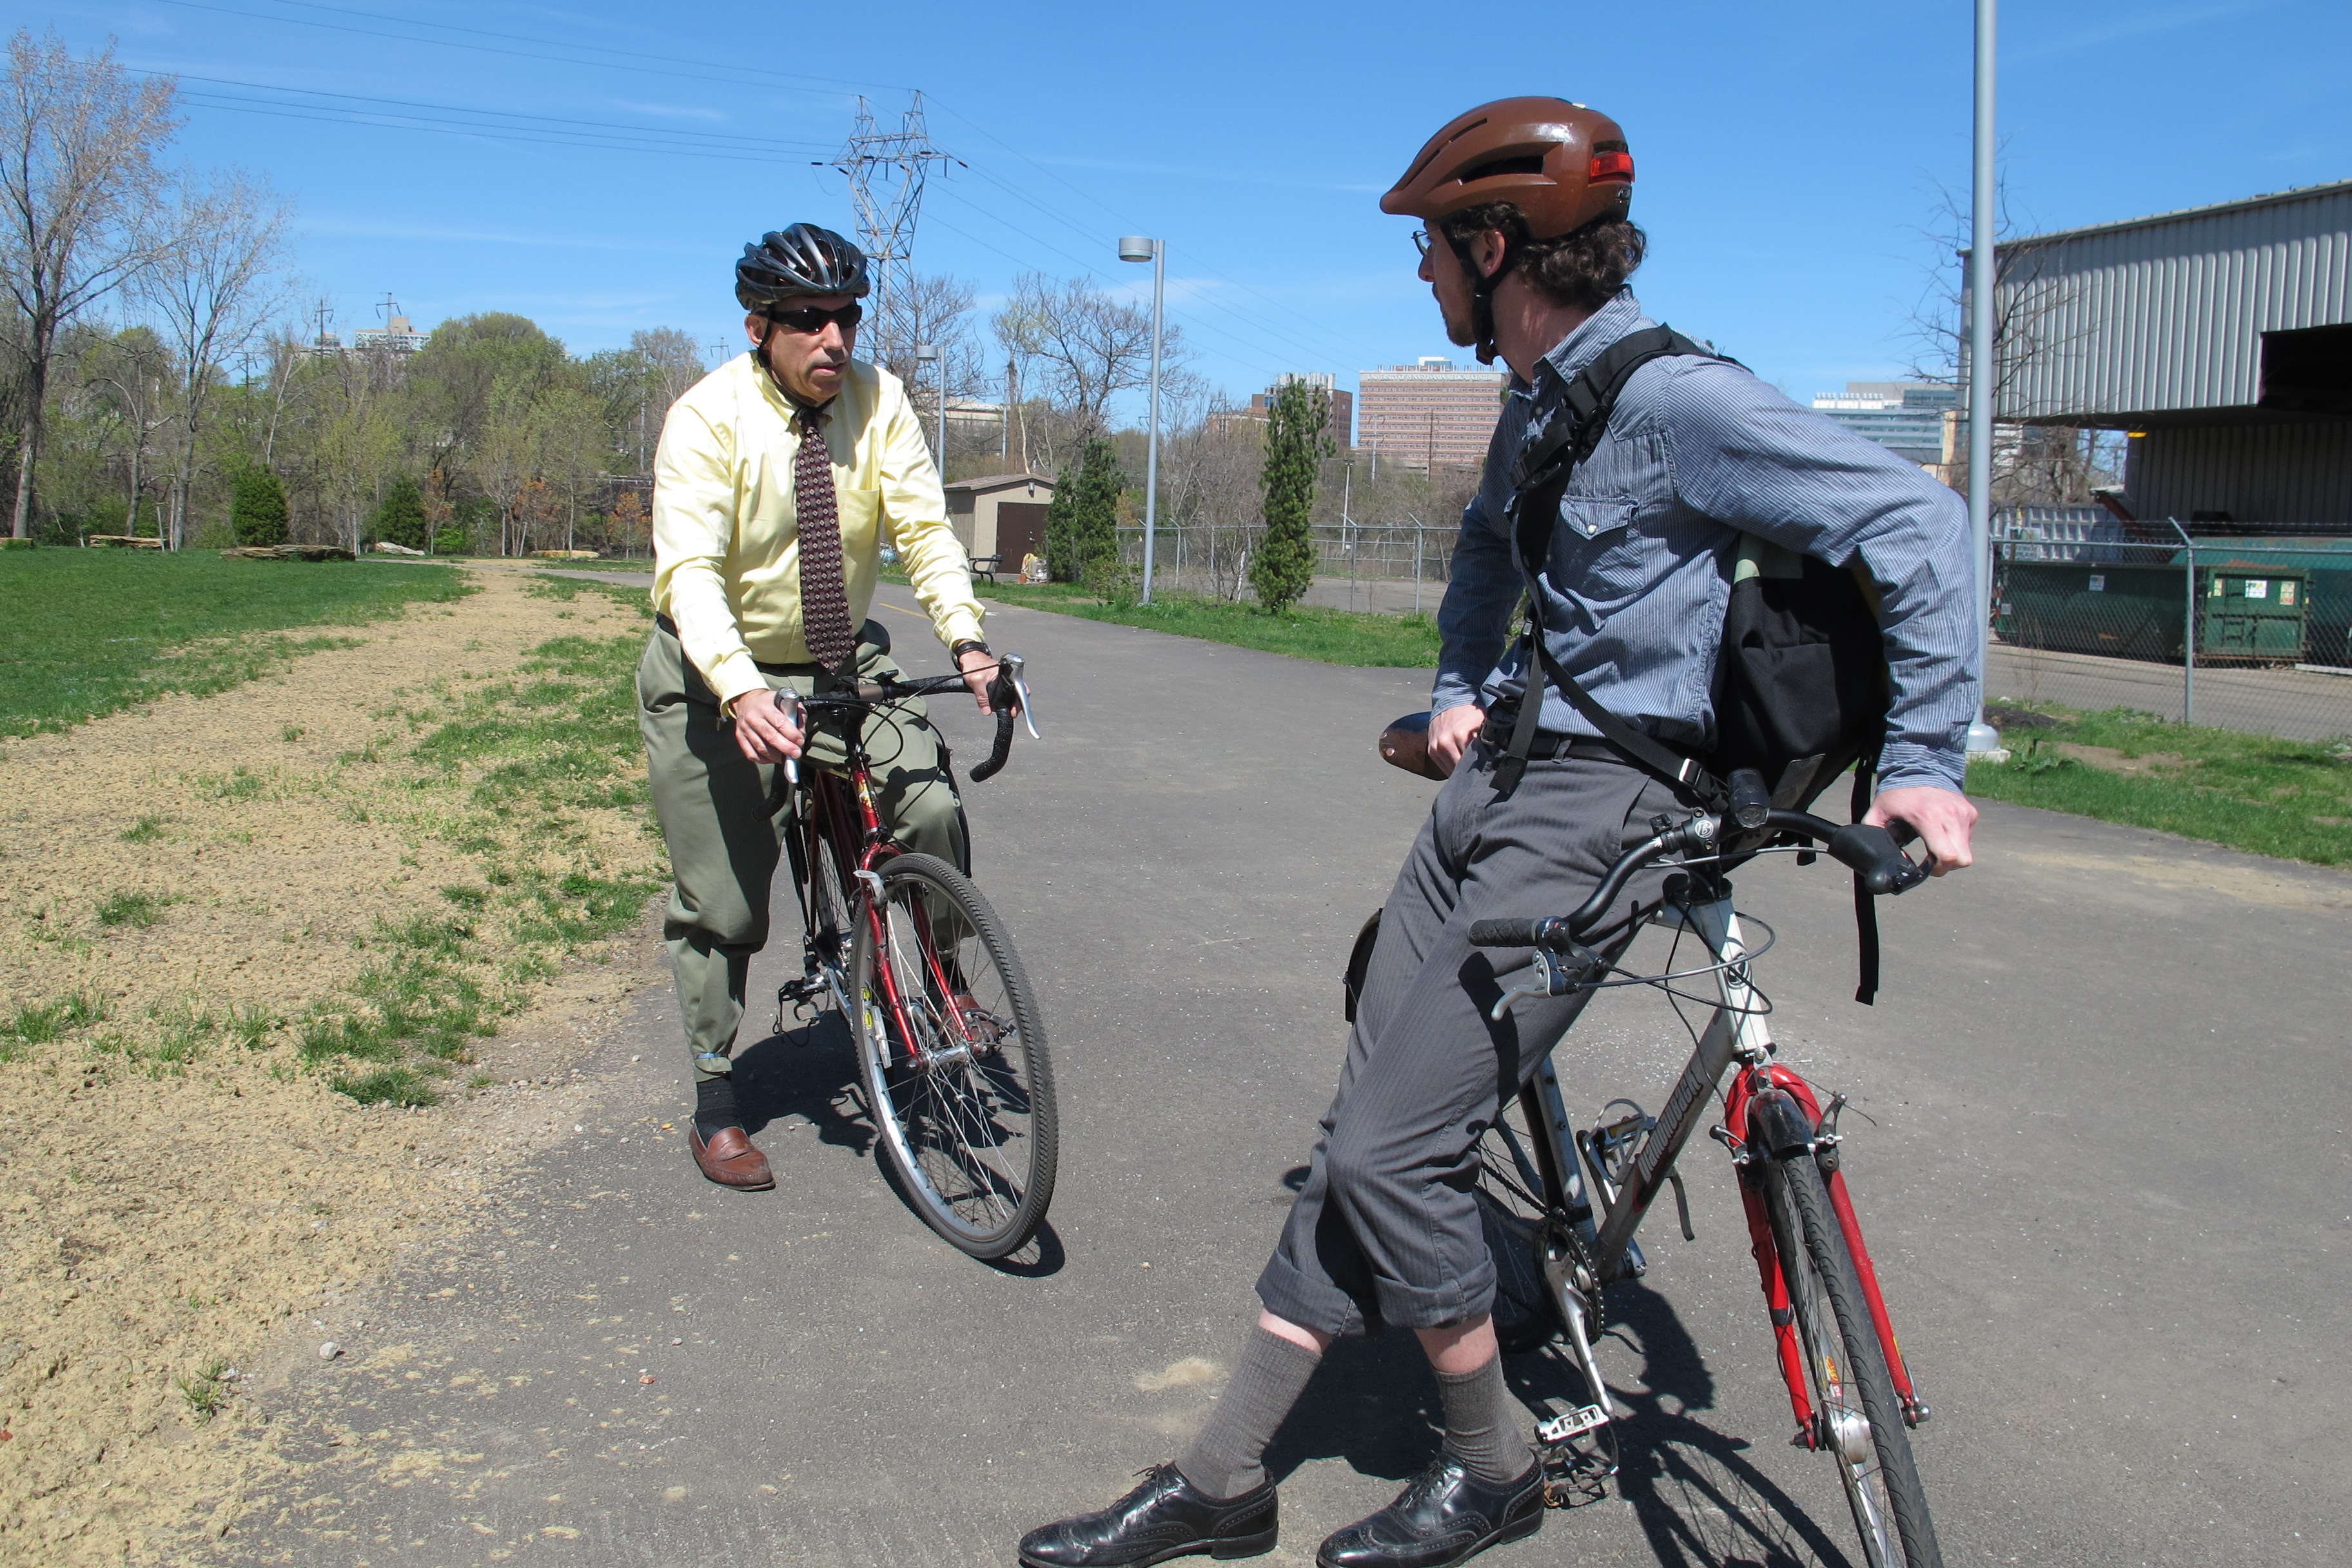 Charles and Aaron paused on the Gray's Ferry Crescent.